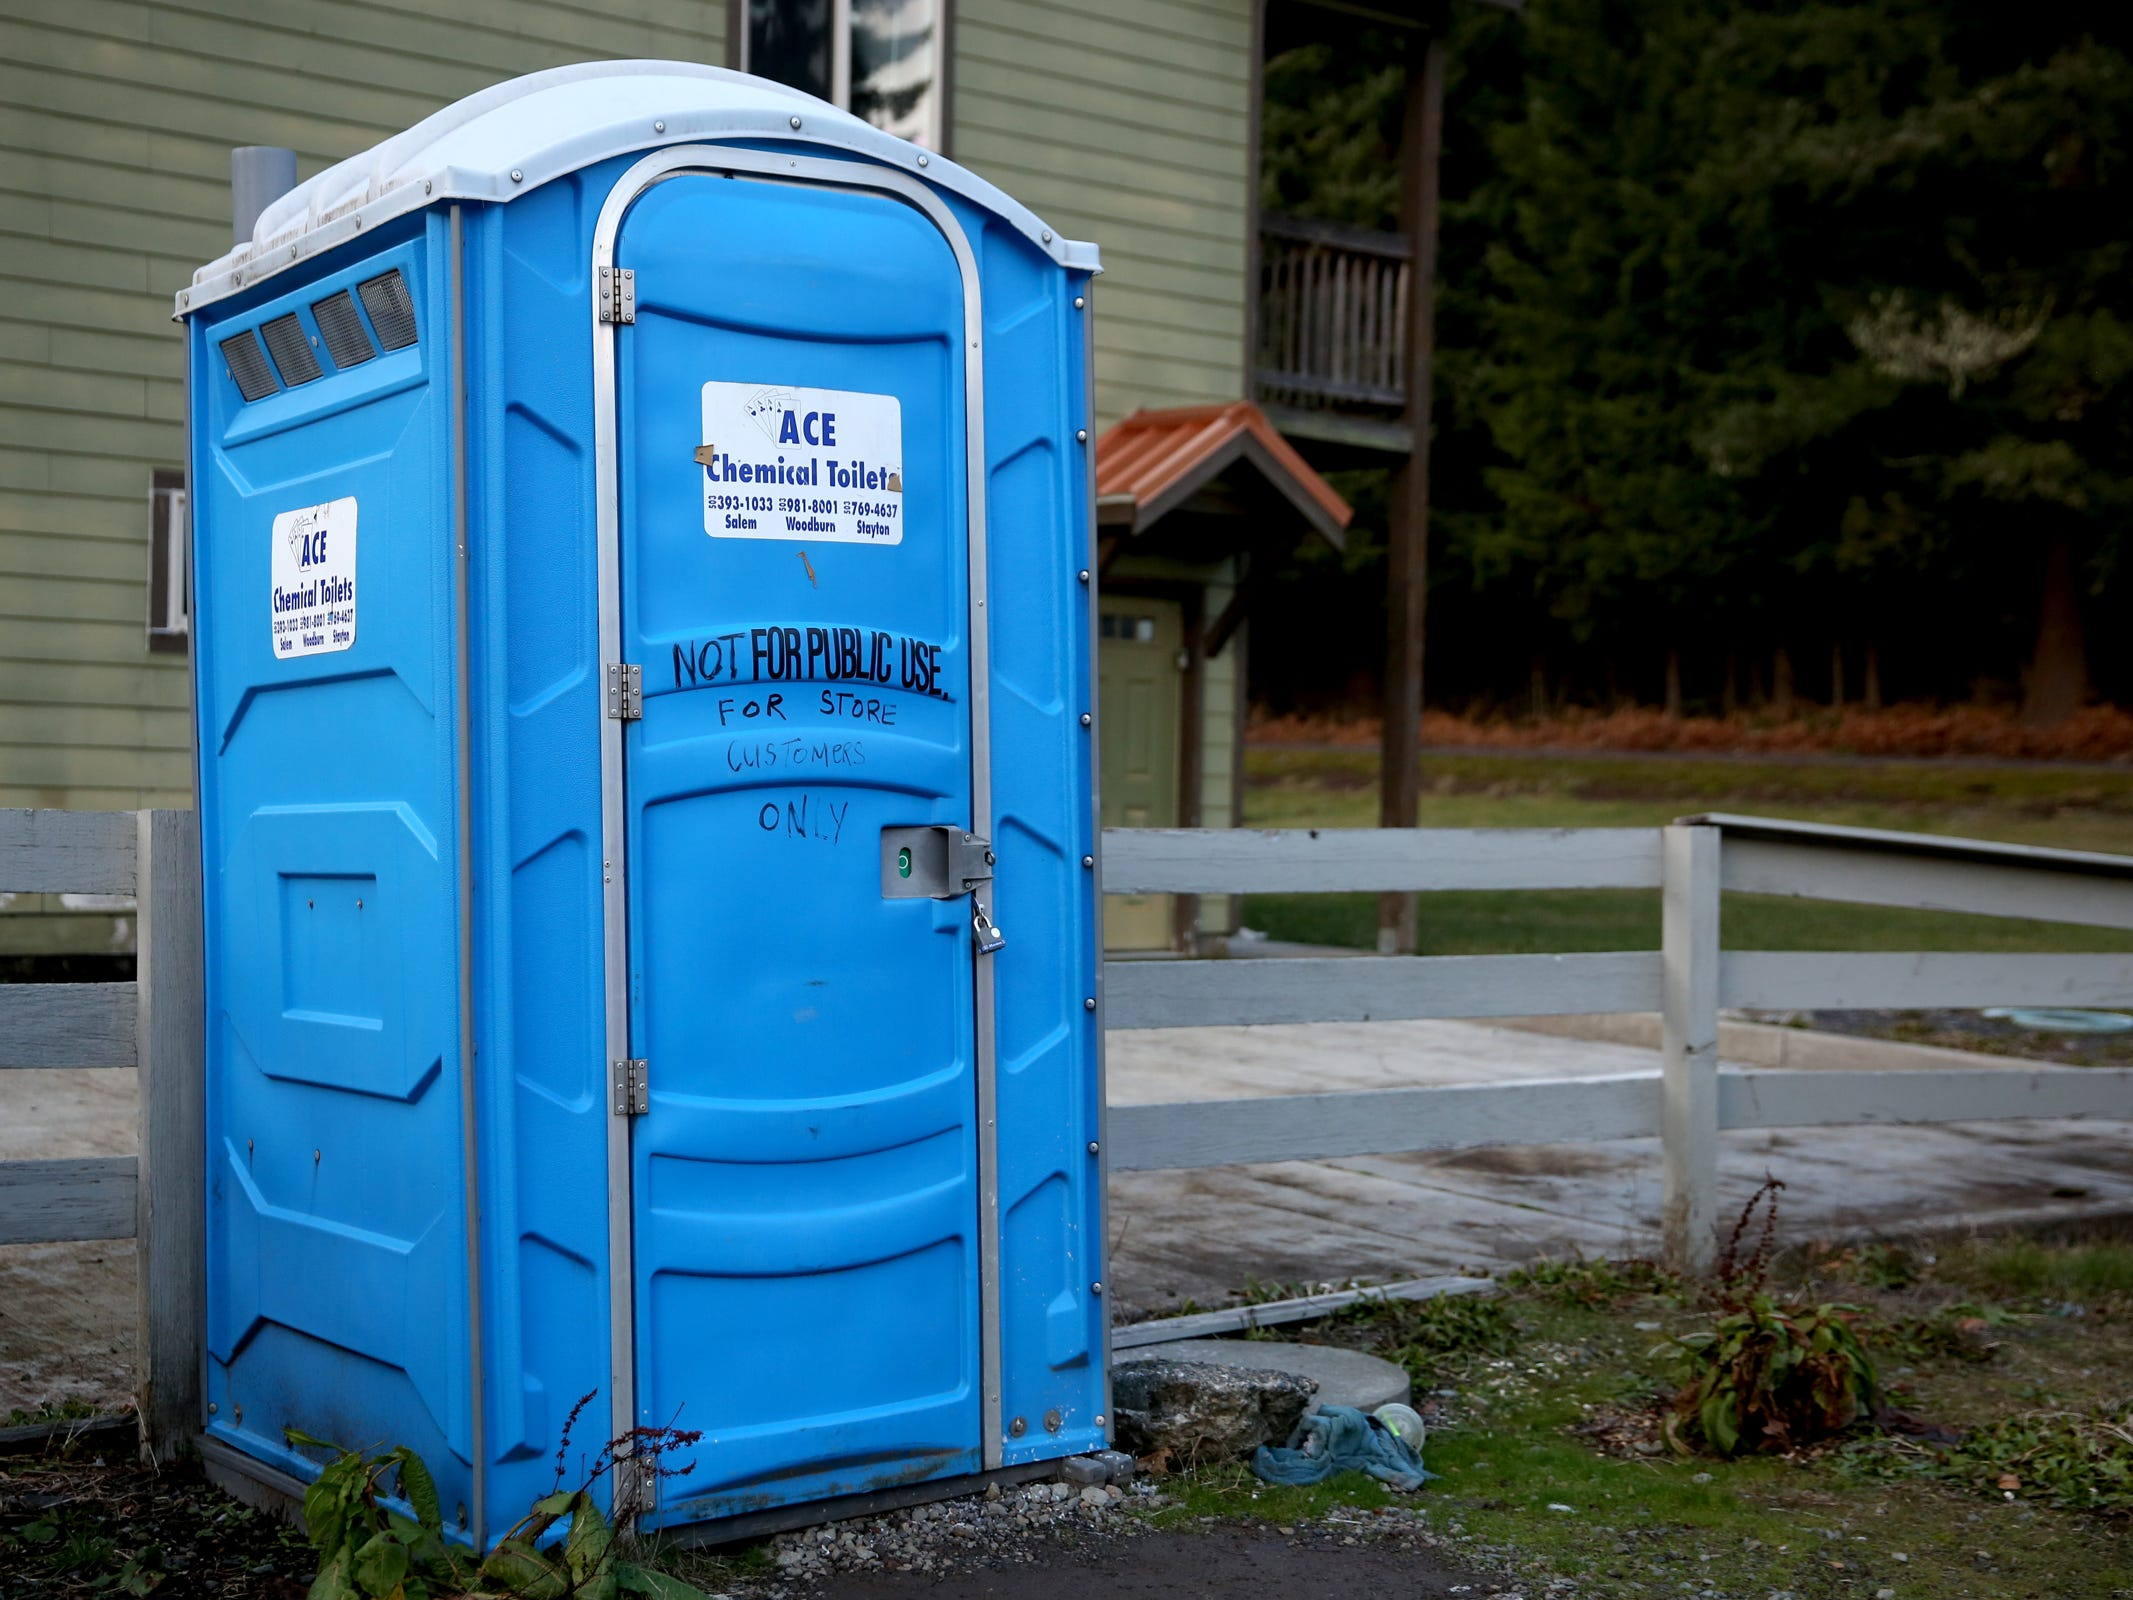 A port-a-potty on Detroit Ave. in Detroit on Thursday, Jan. 3, 2019. The city has no sewer system, and residents and businesses rely on septic systems, many of which are in need of replacement.